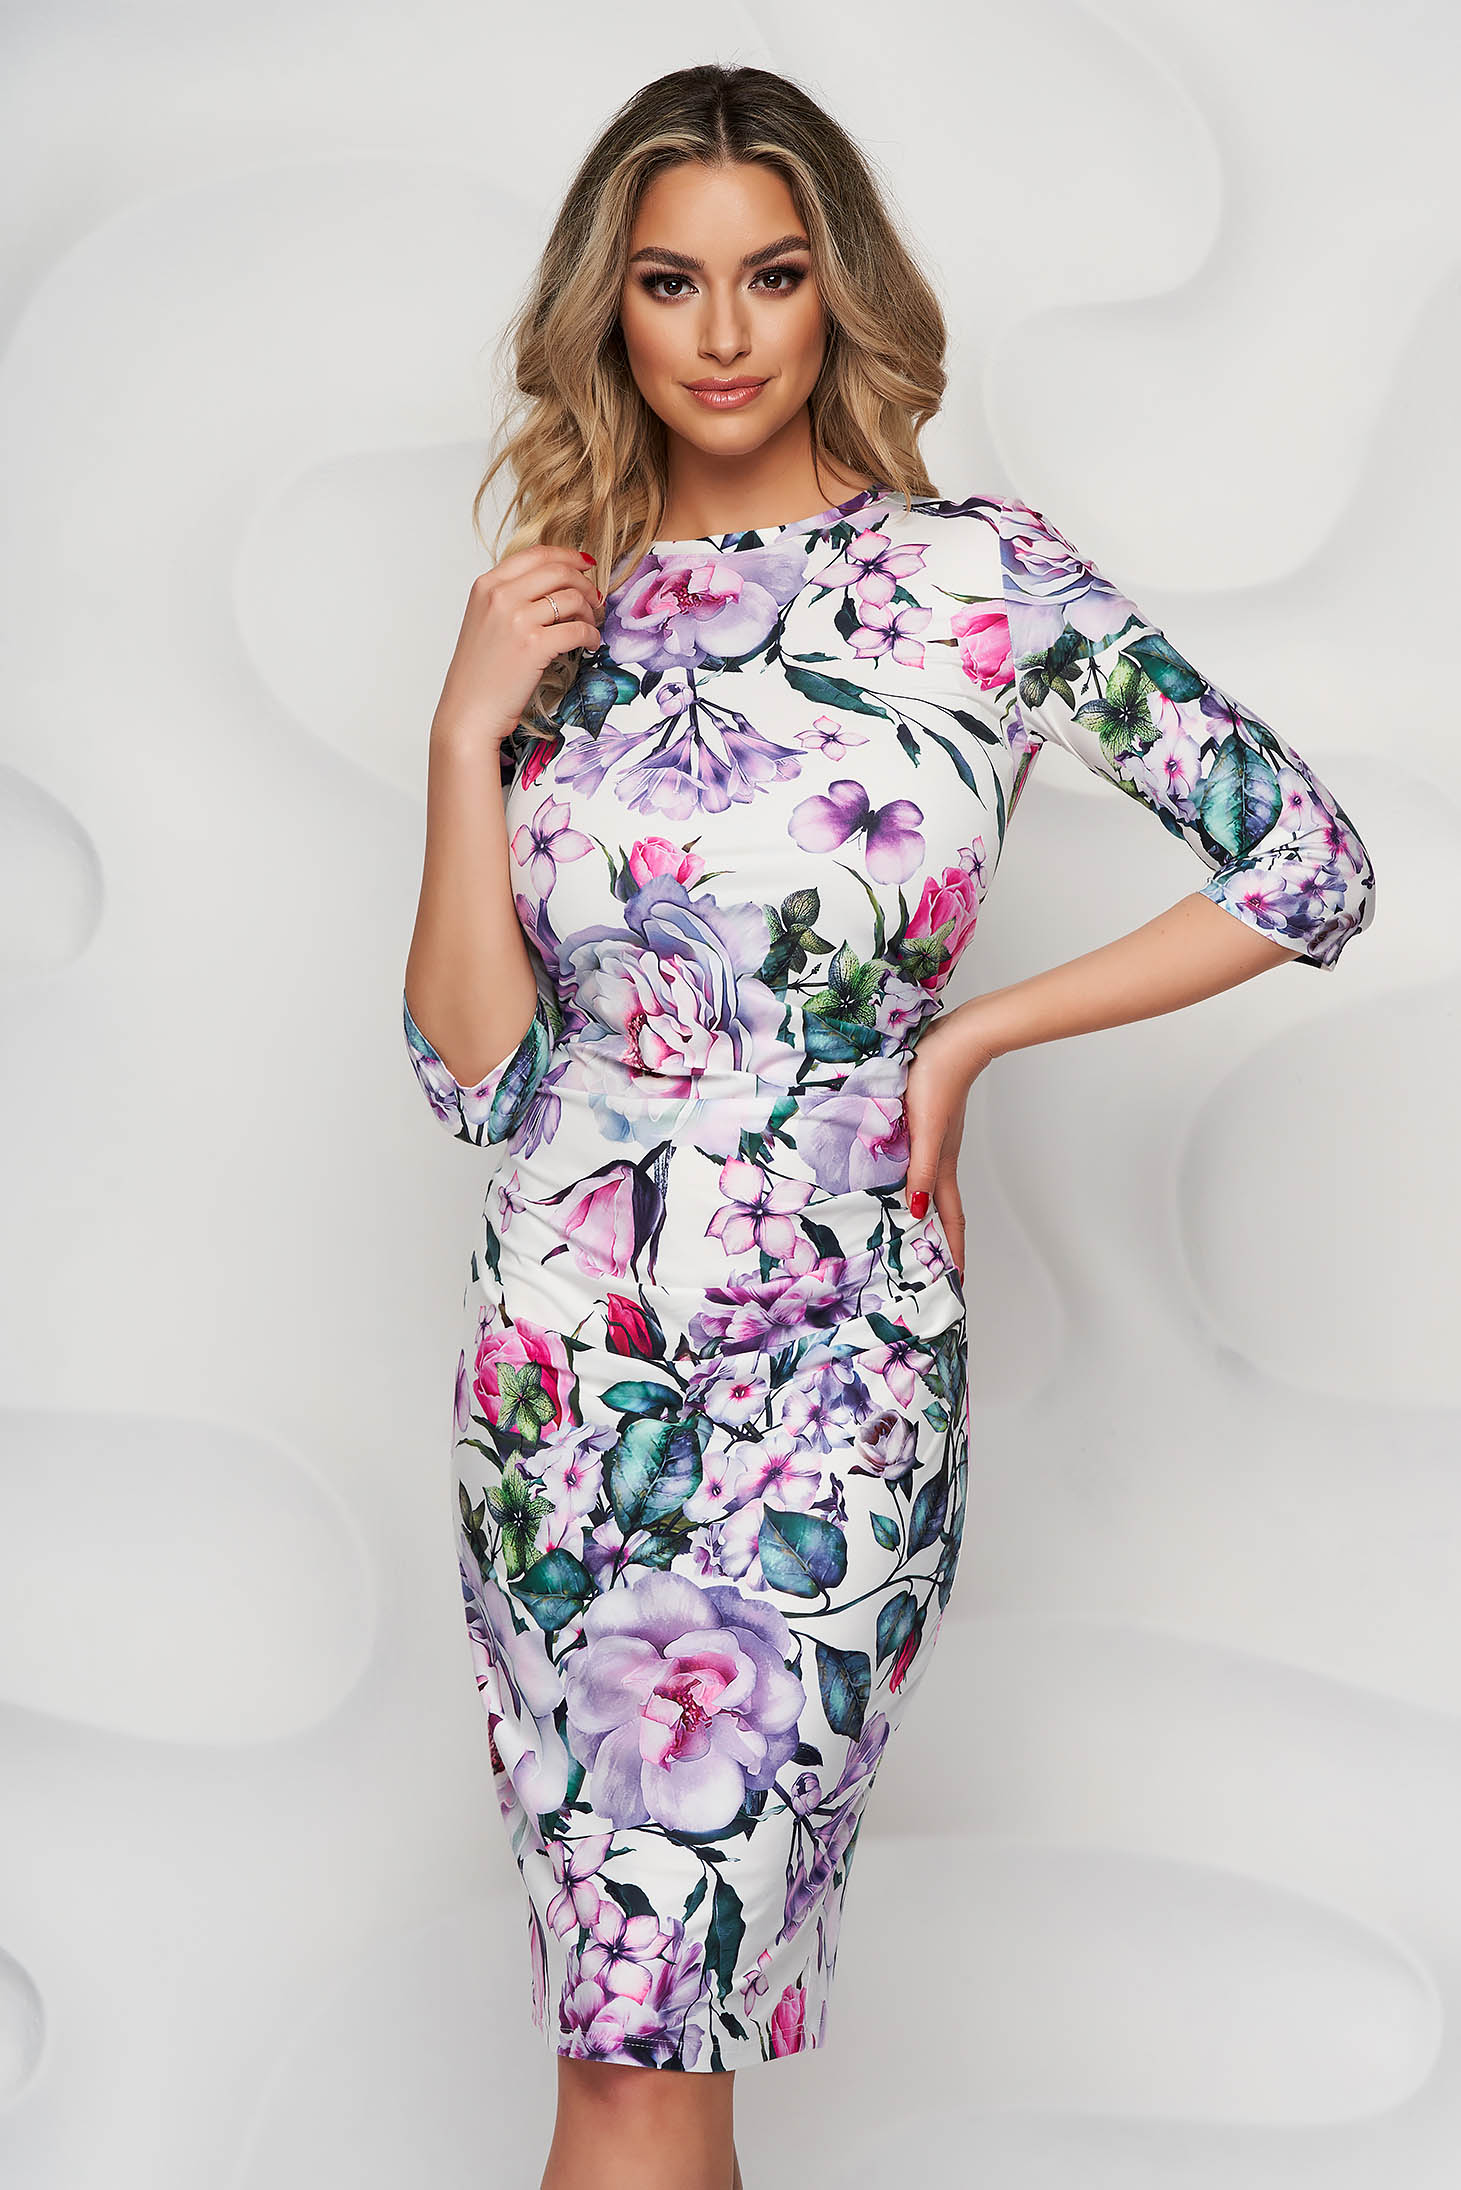 Rochie StarShinerS office midi tip creion din material elastic si fin usor incretit in lateral cu imprimeu floral unic